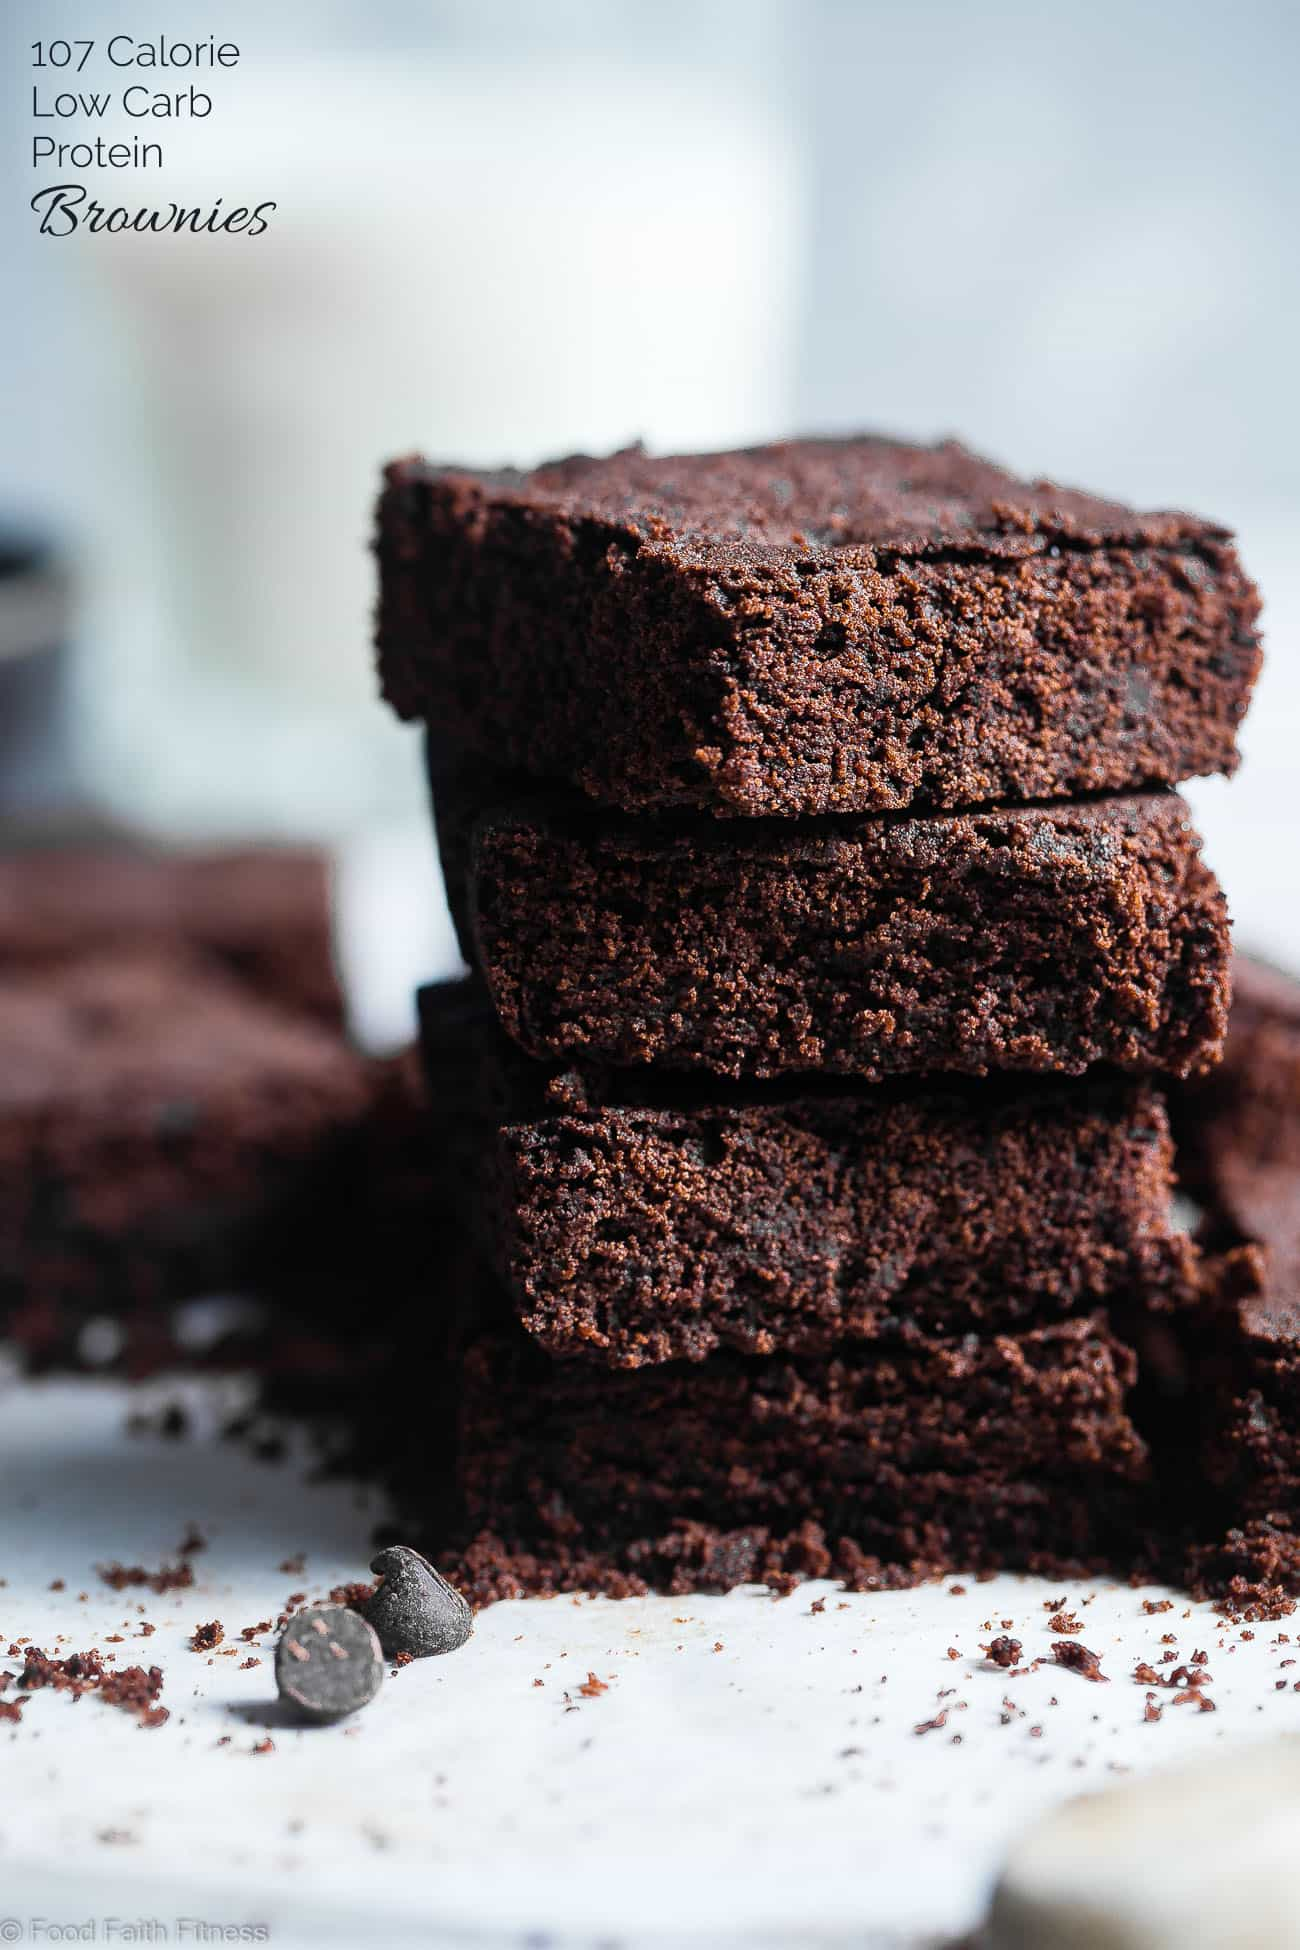 Low Carb Keto Protein Brownies - SO dense and chewy you would never believe they are